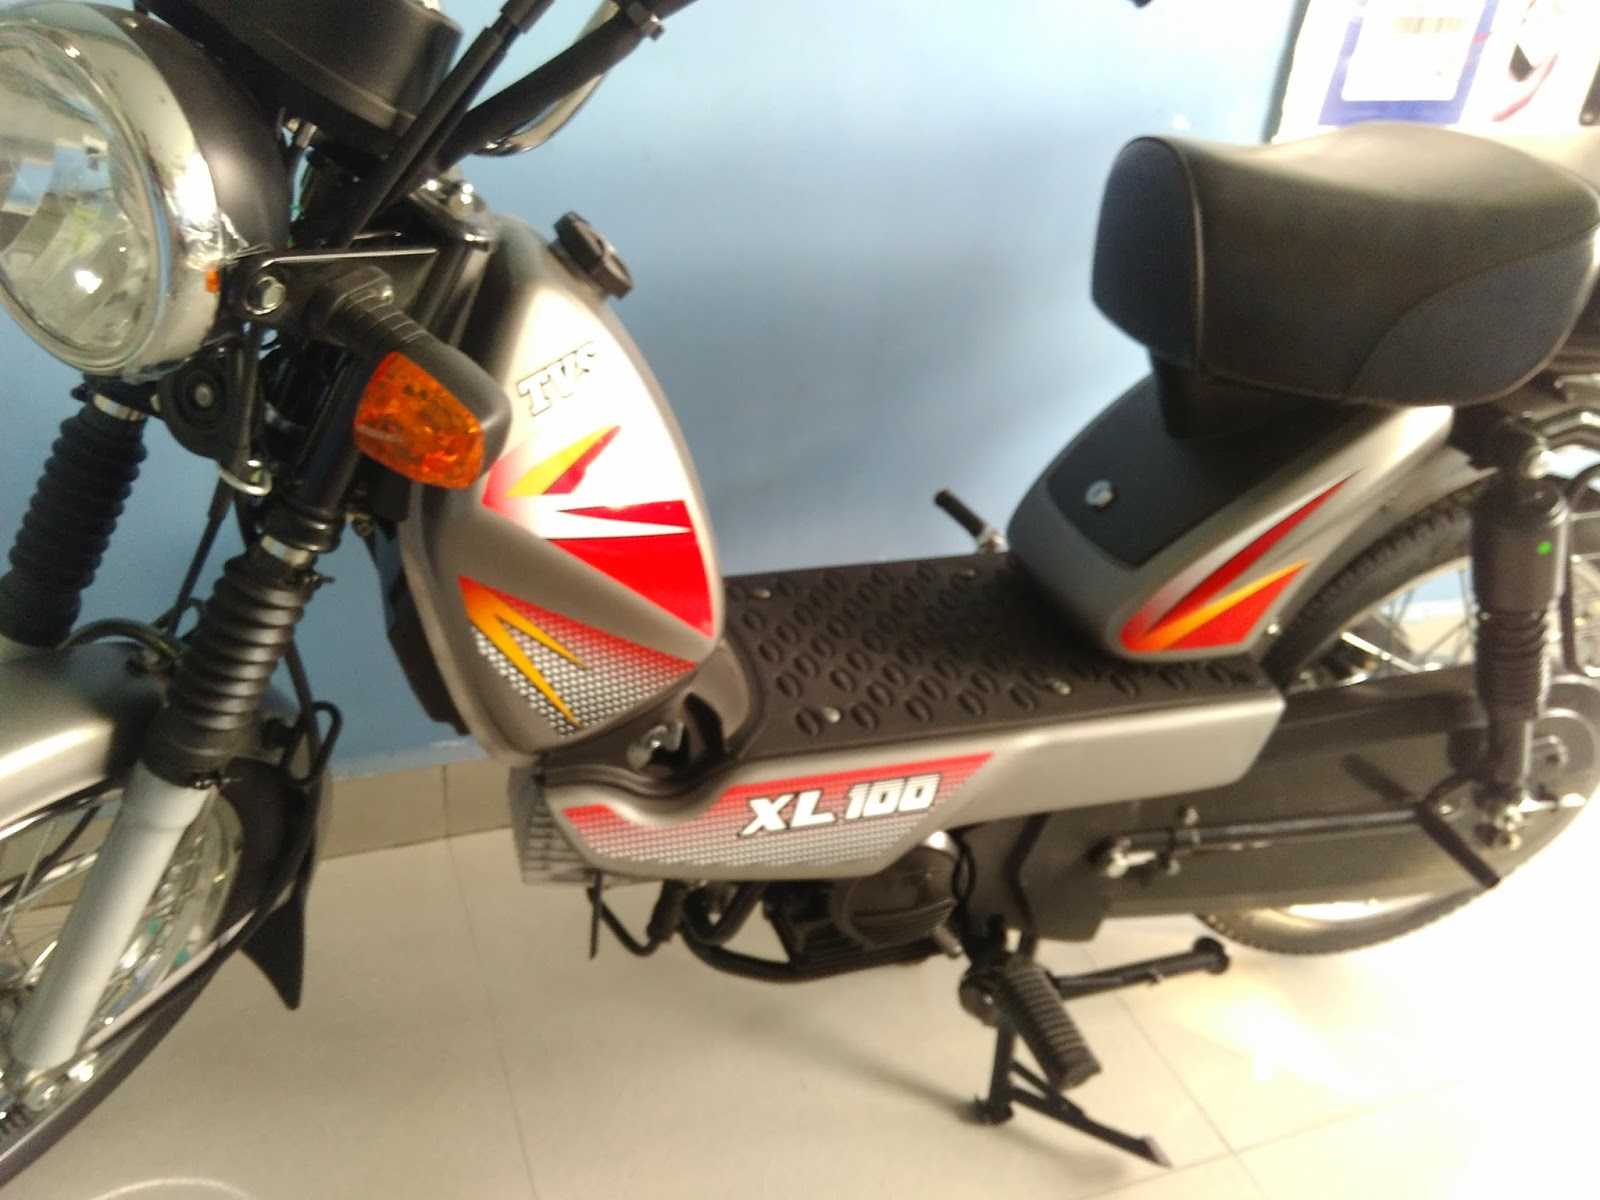 TVS XL100 4 stroke- Most affordable moped now more peppier! - eNidhi